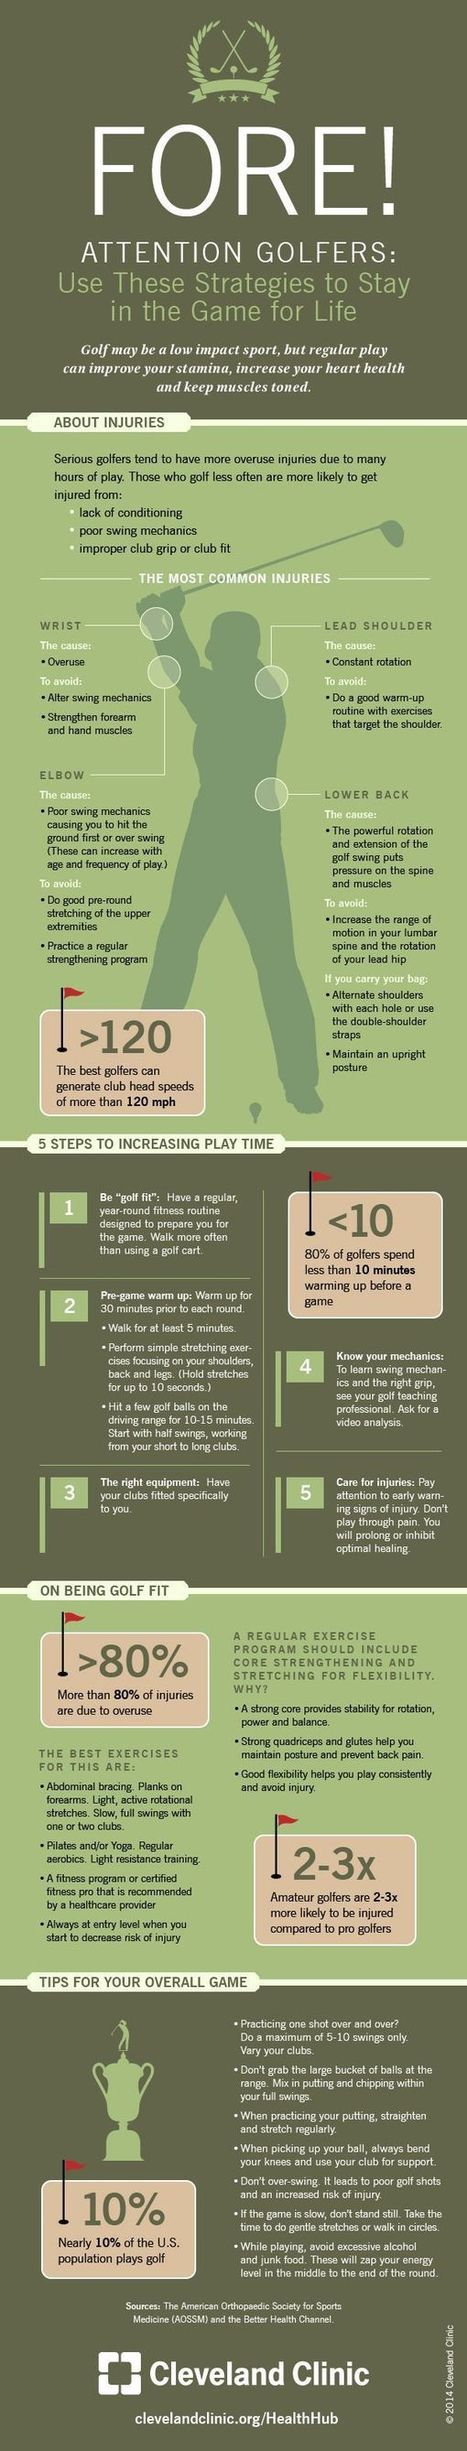 Being 'Golf Fit' Will Increase Your Play Time (Infographic) | Golf Infographics | Scoop.it